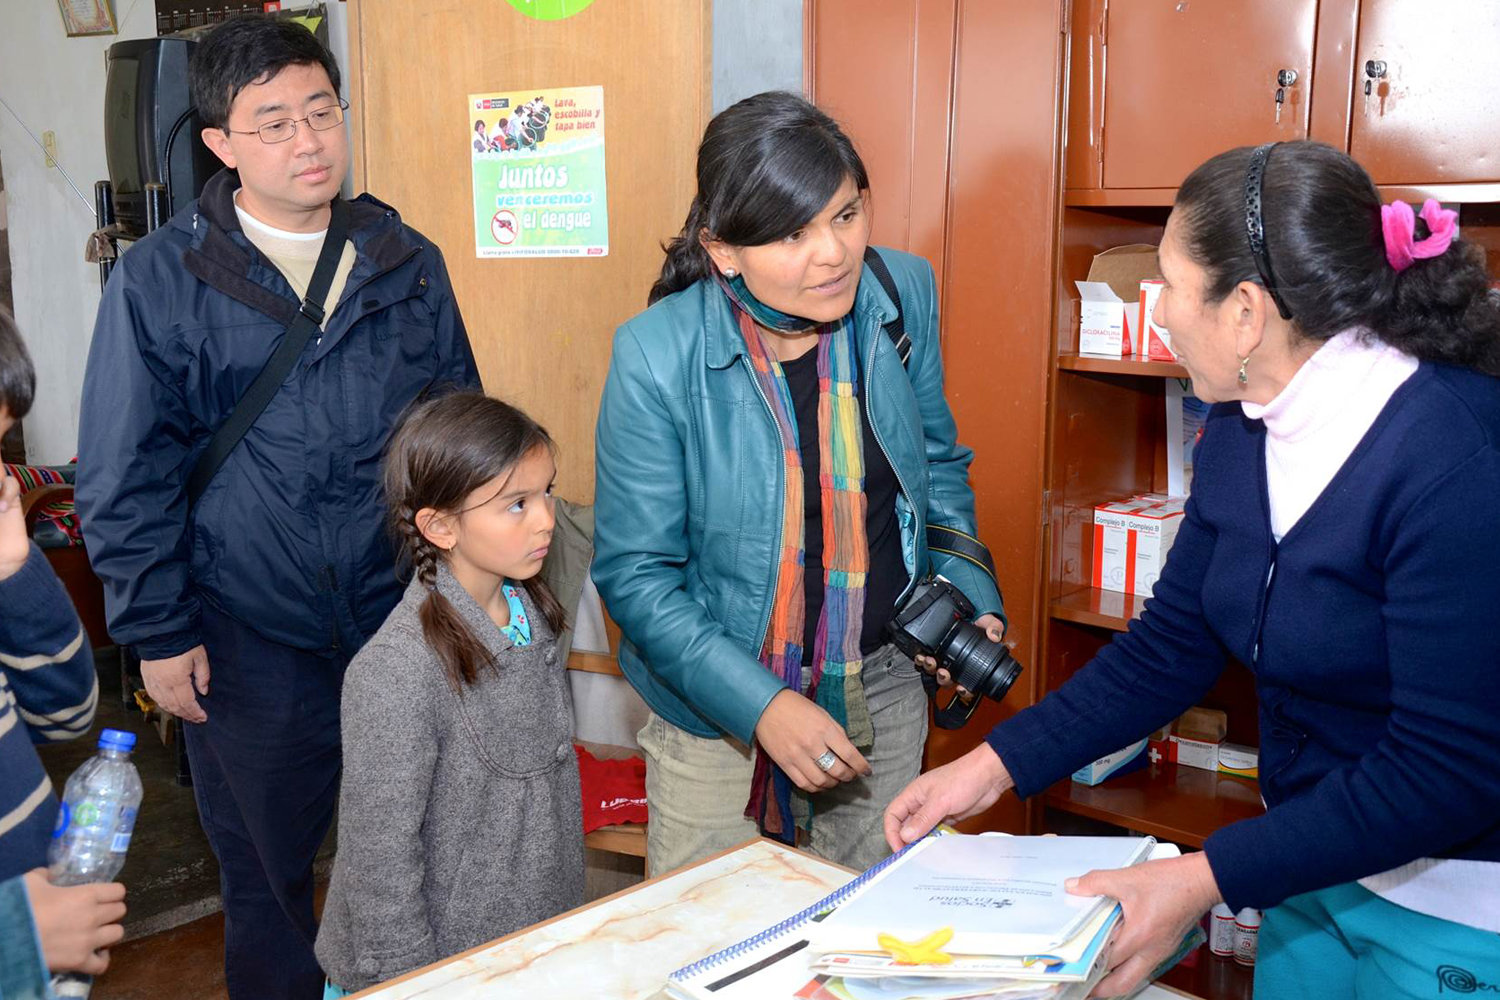 Assoc. Profs. Benyuan Liu and Maria Julia Brunette talk to a health-care worker at a TB clinic in Carabayllo, near Lima, Peru, during their visit in August 2013.